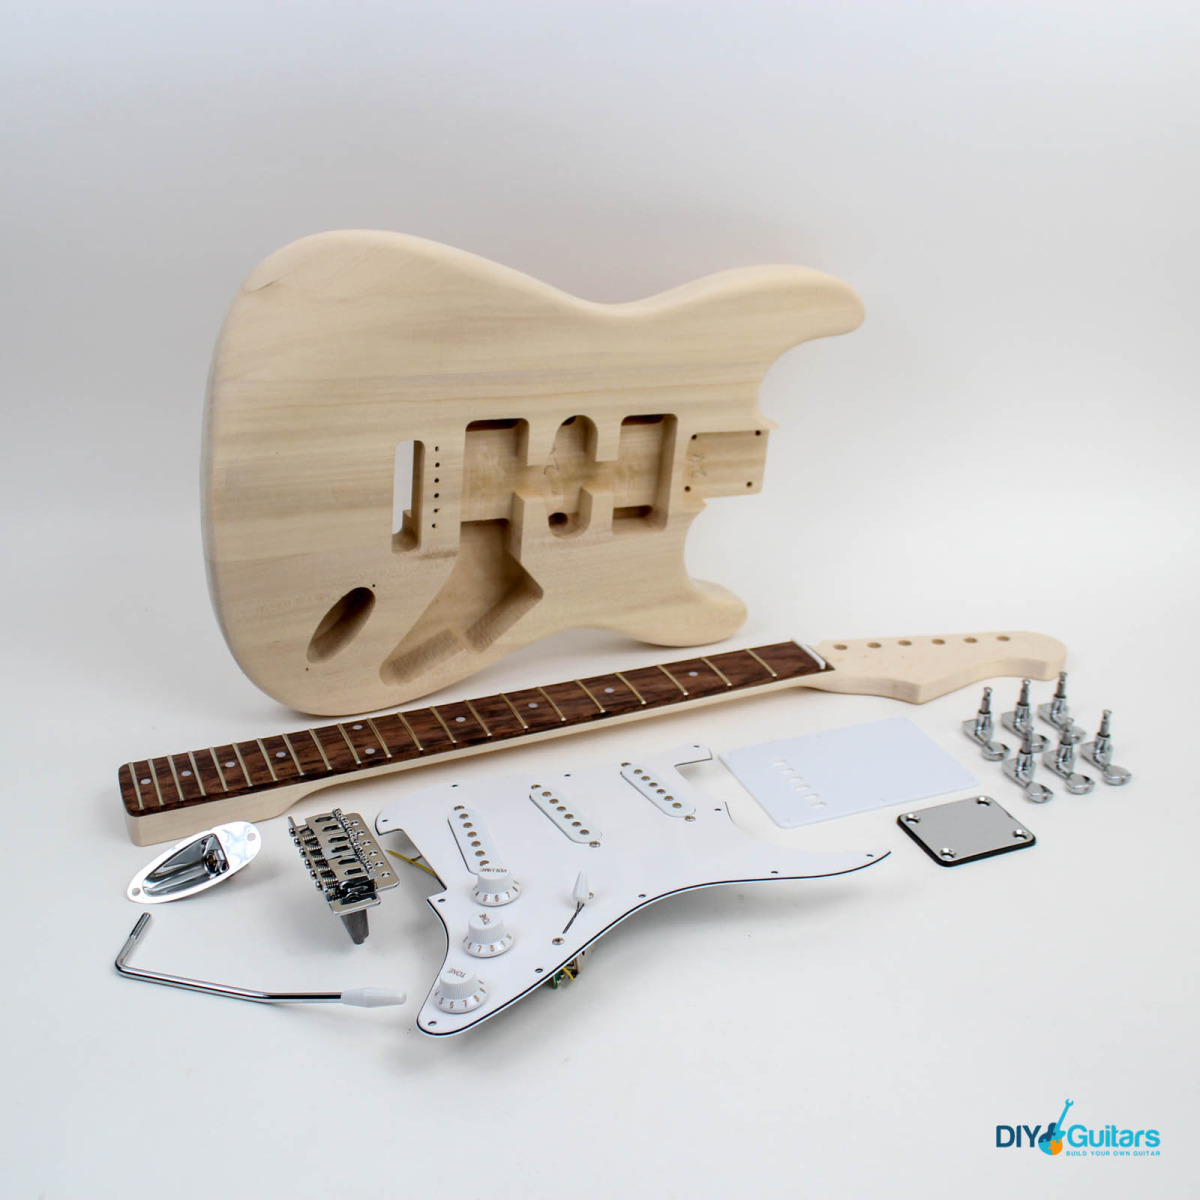 Fender stratocaster style guitar kit diy guitars strt guitar kit 14 variations solutioingenieria Image collections